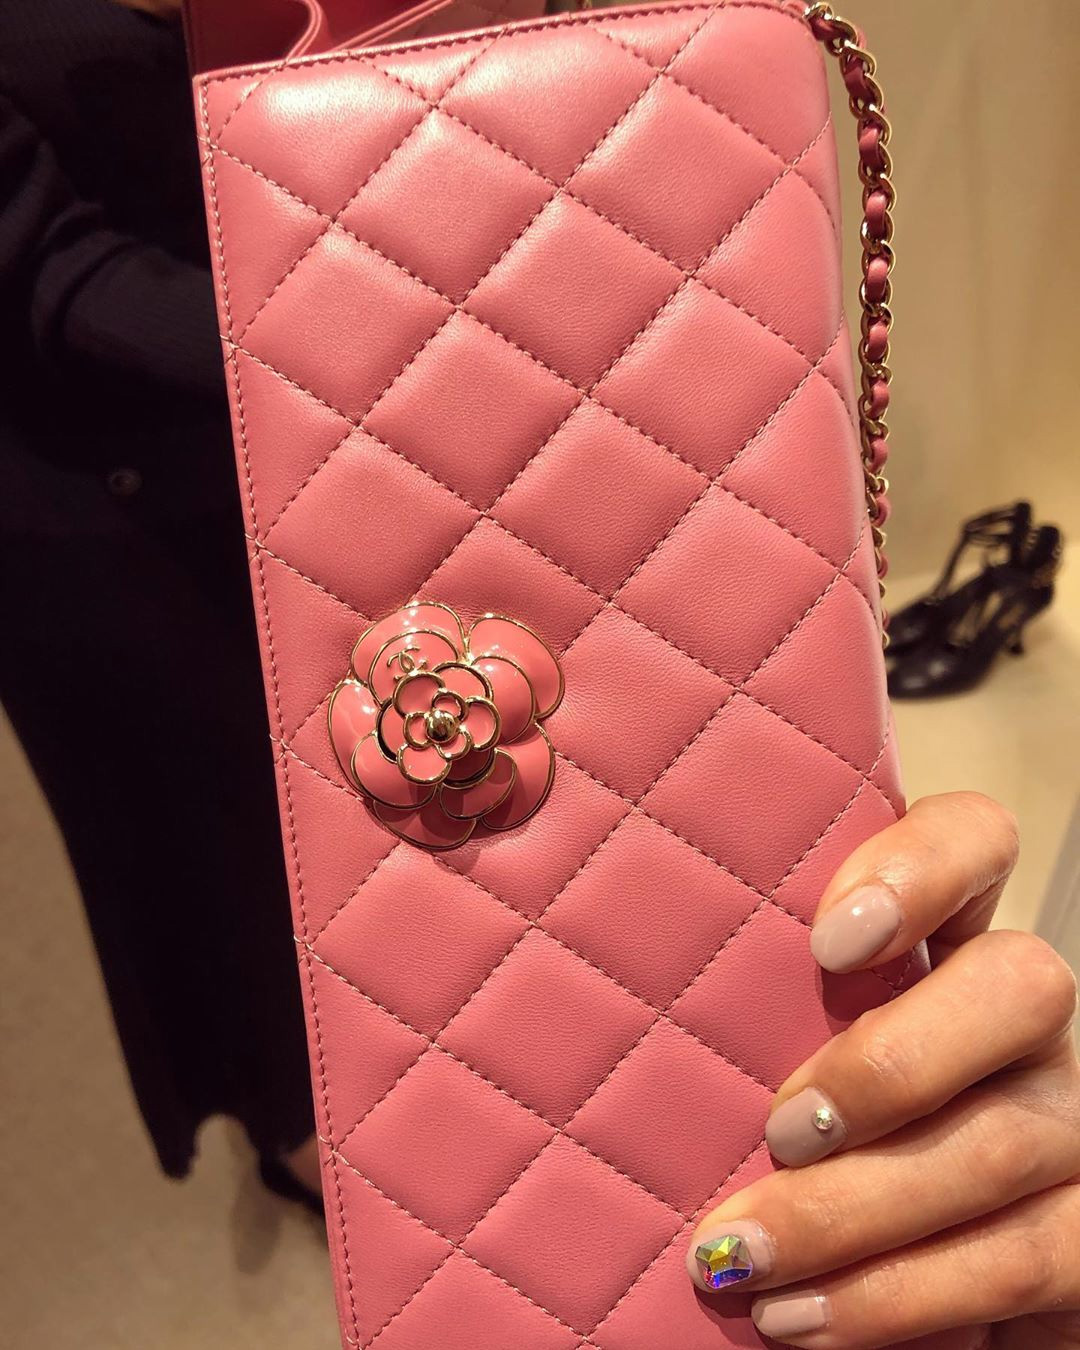 Chanel Camellia Lock Clutch With Strap